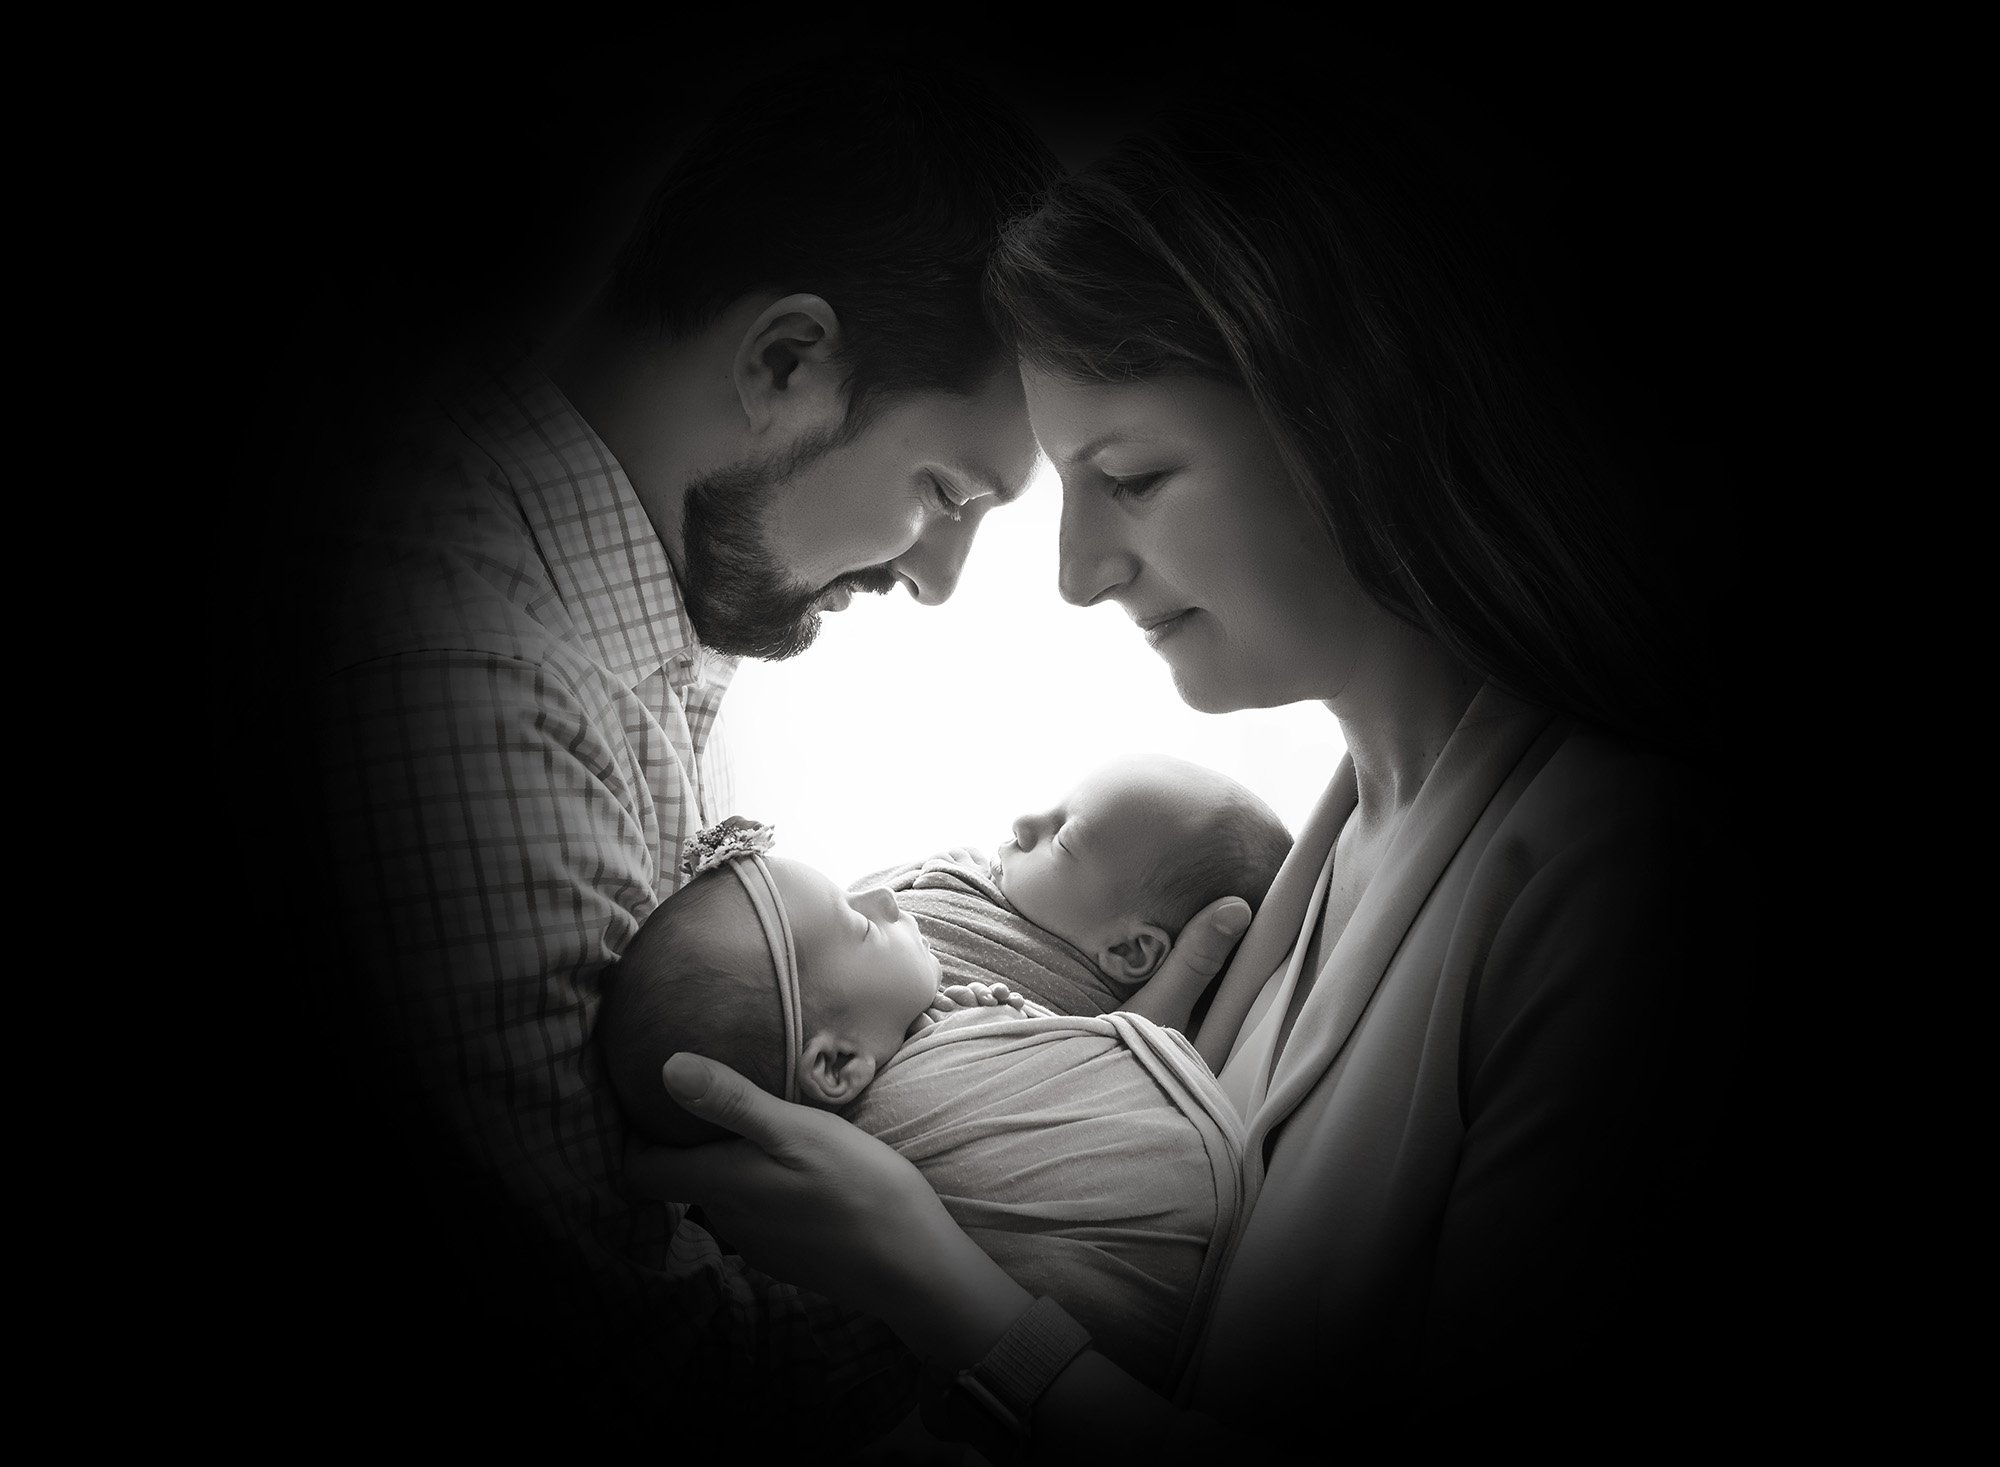 Twins newborn photography silhouette shadow of new parents face's while cradling their newborn baby boy and girl